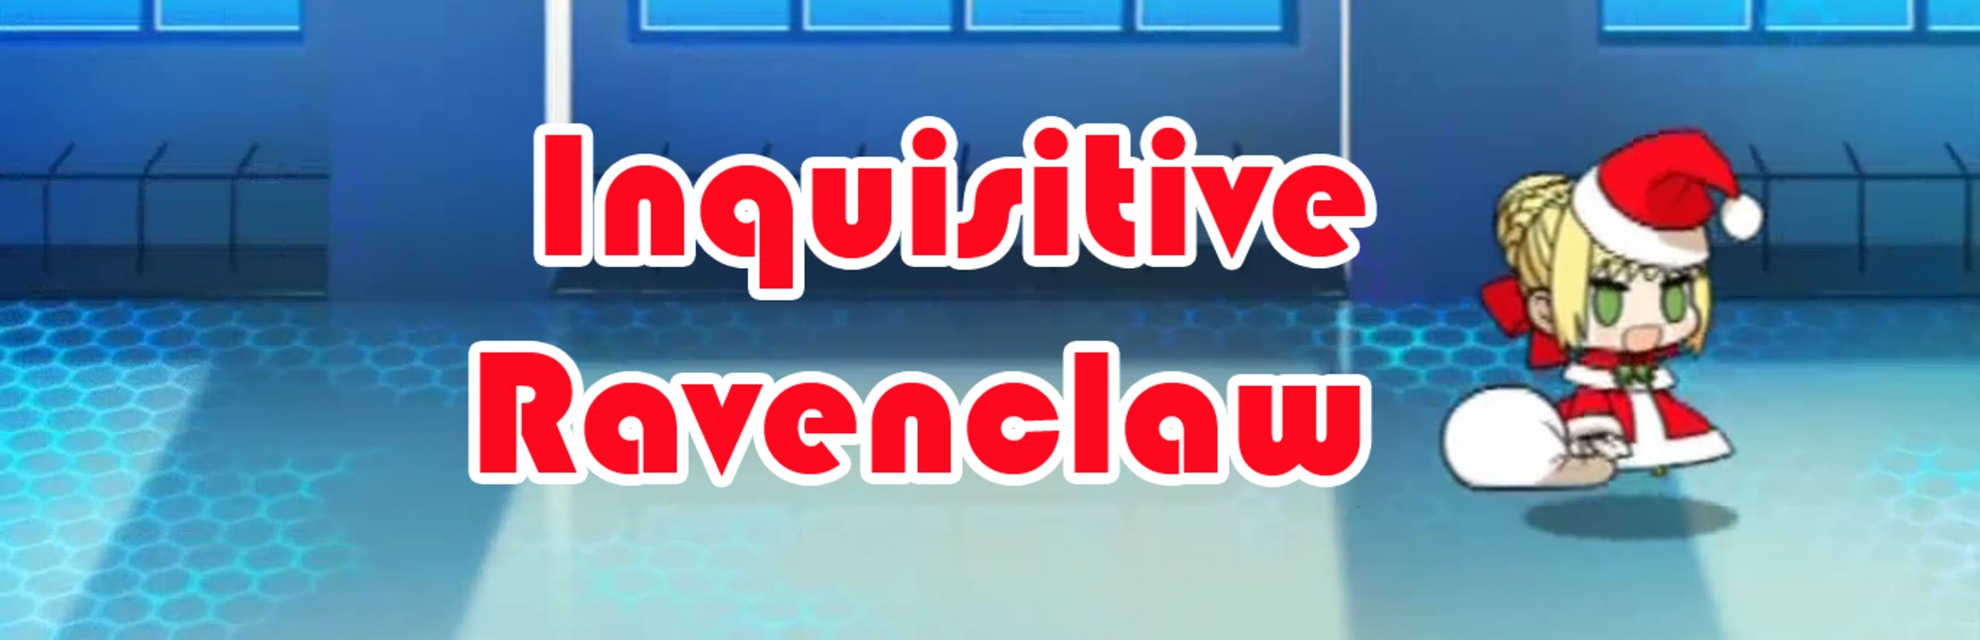 Inquisitive Ravencaw blog header photo